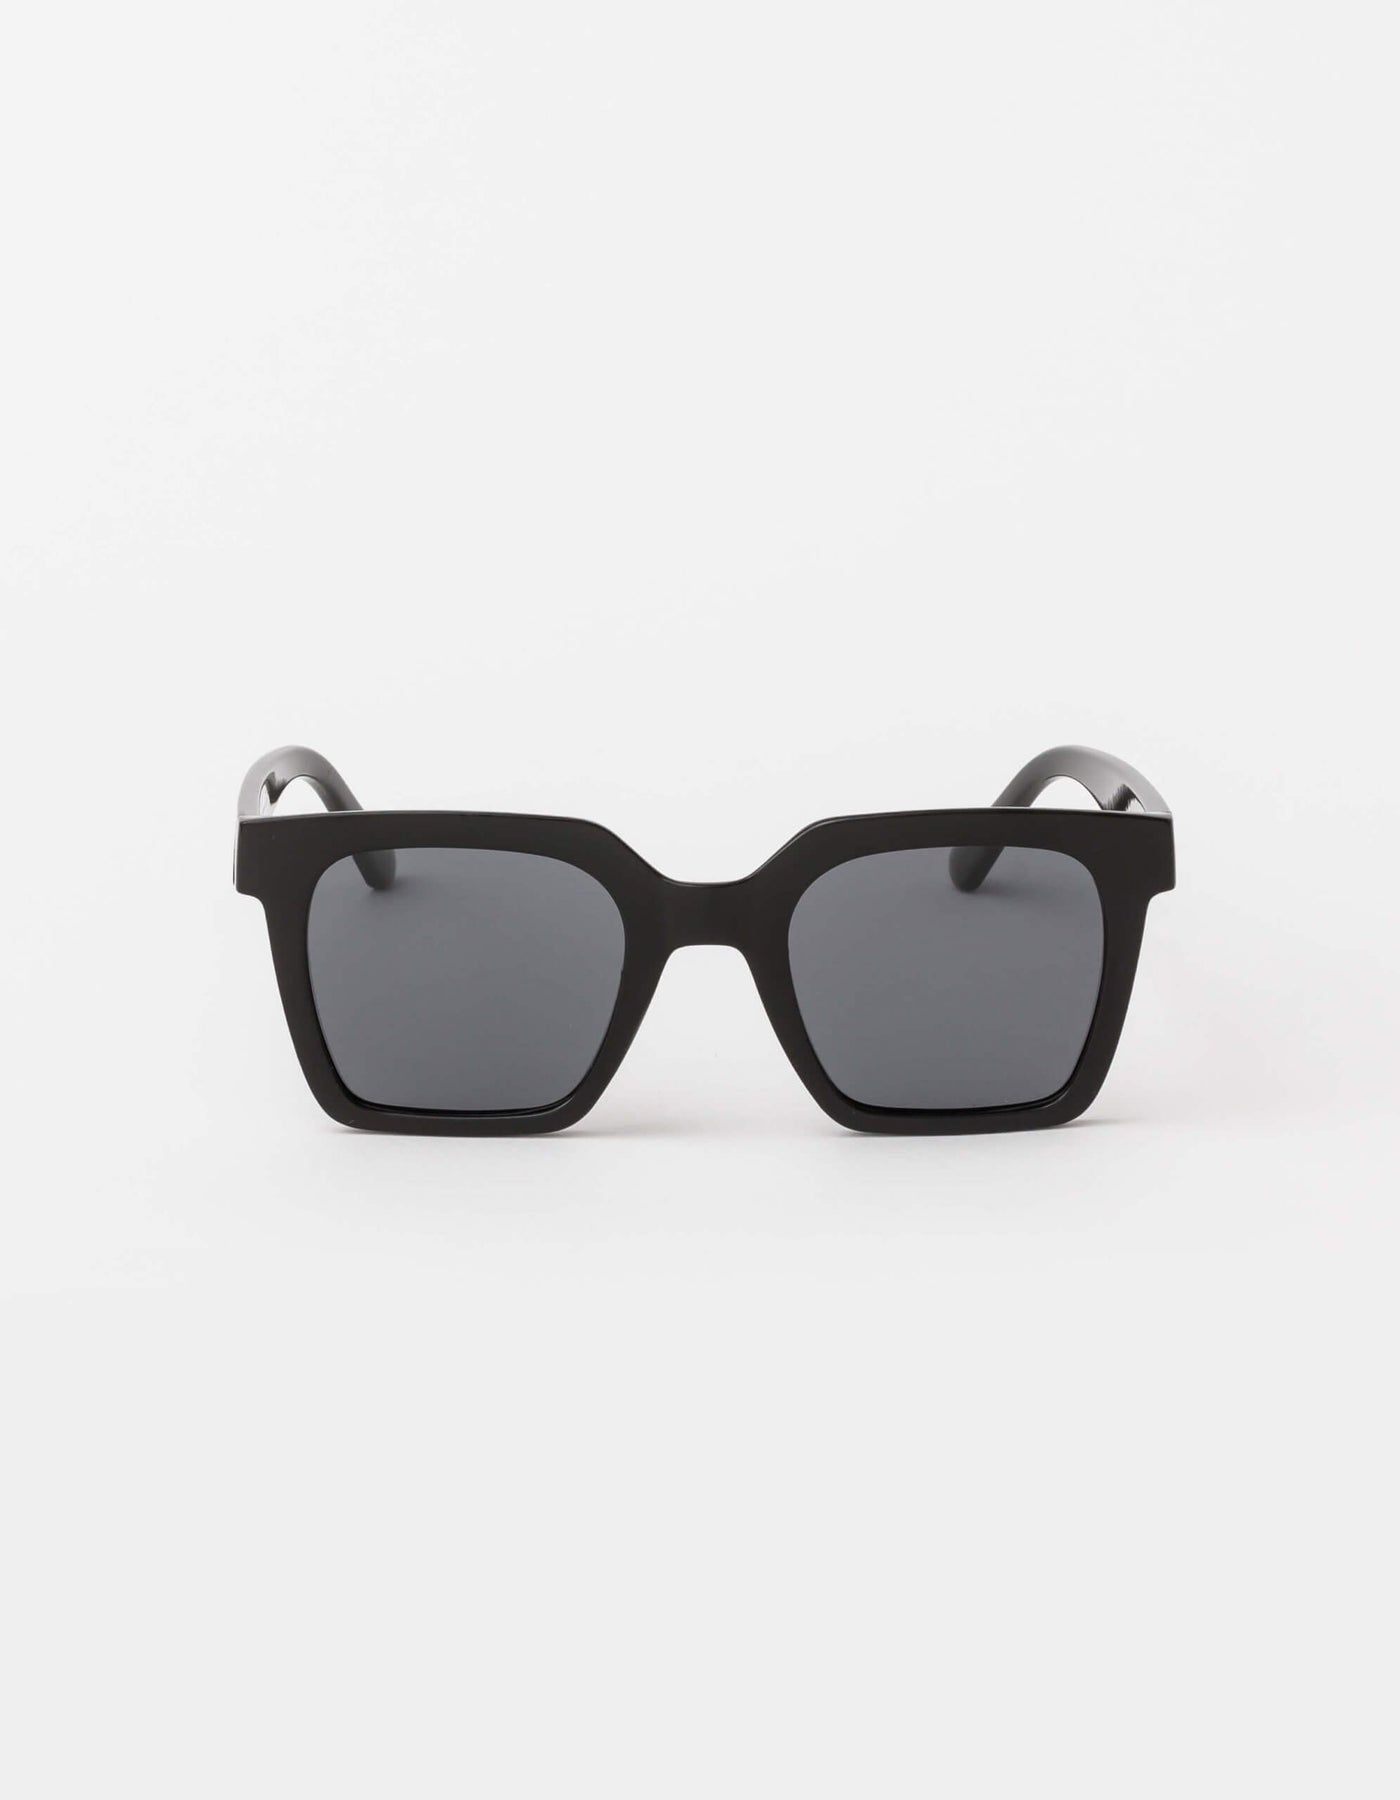 Sunglass Milan Black